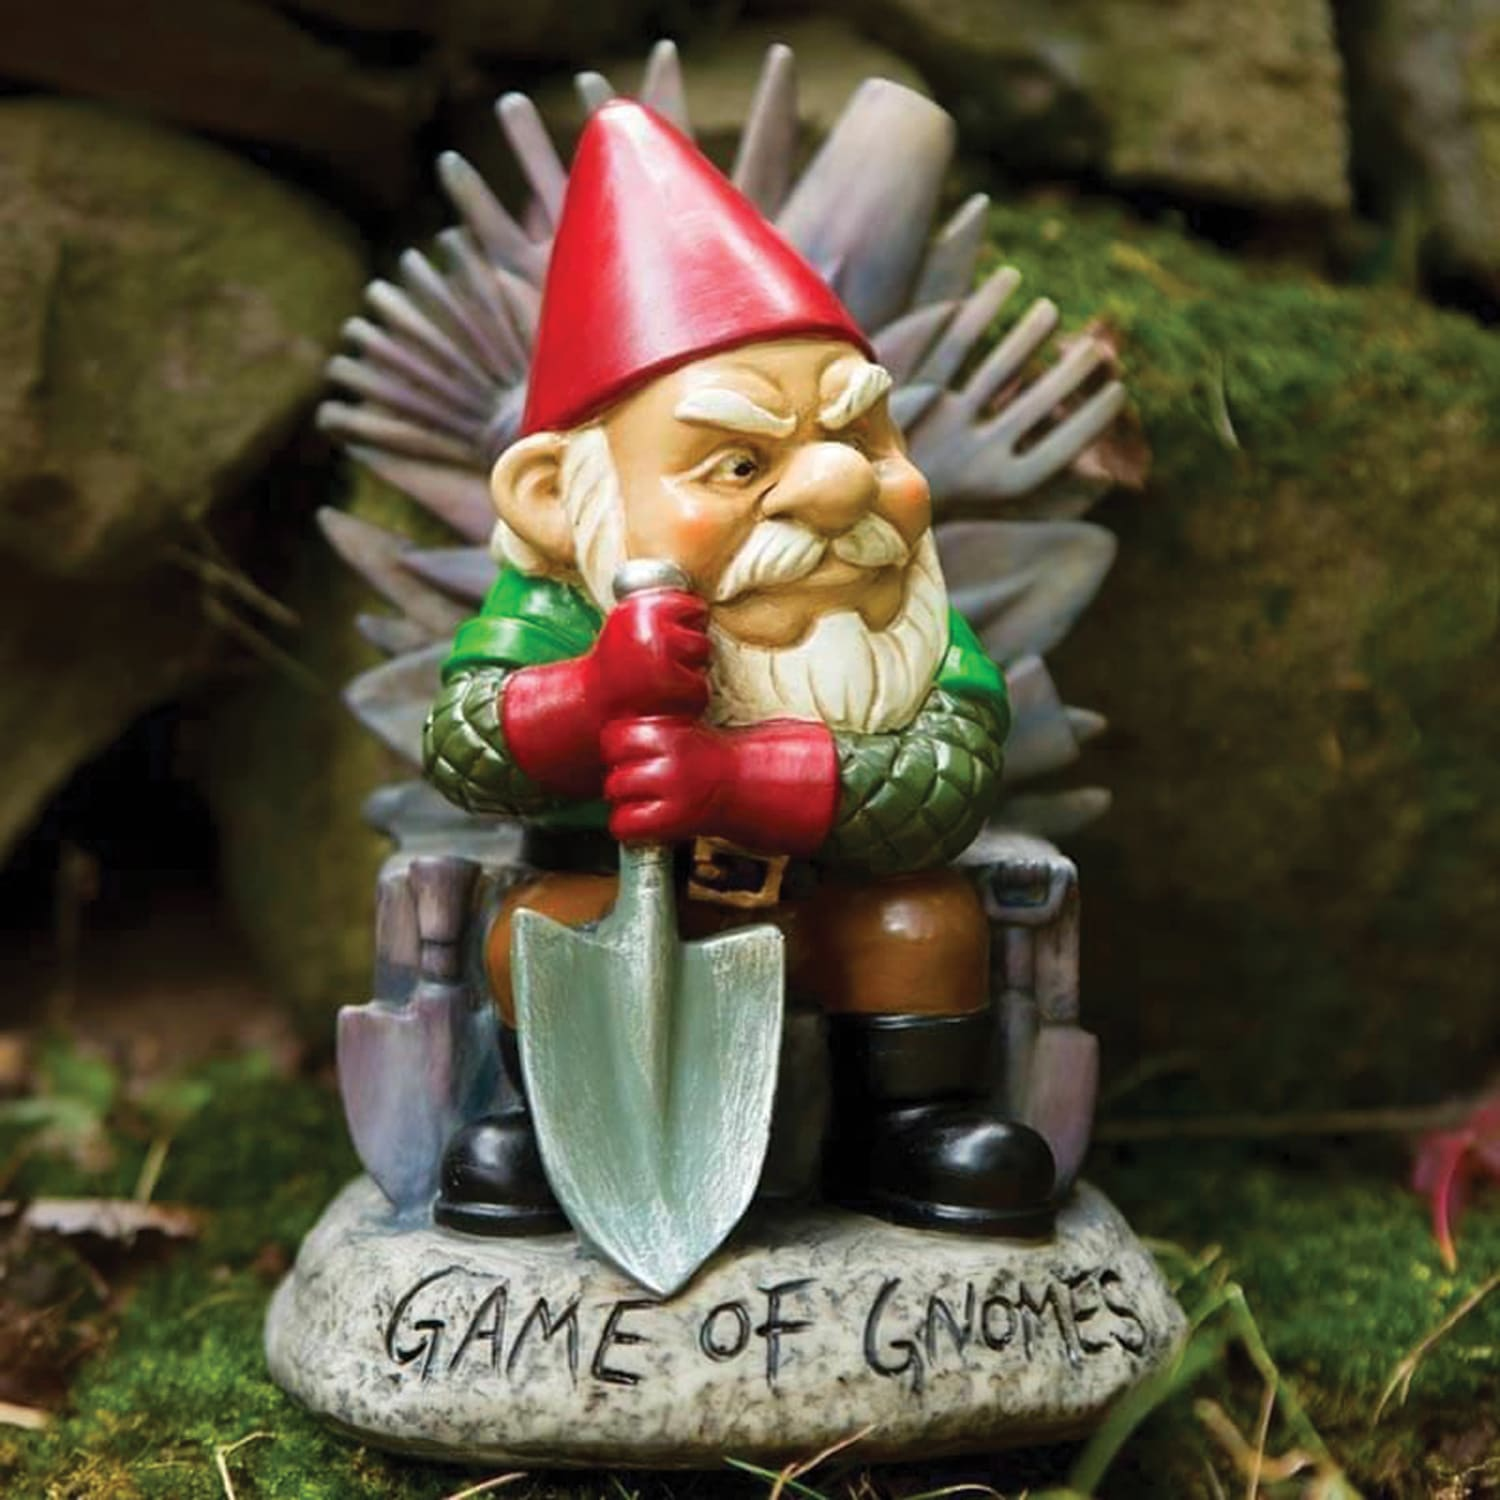 Gnome Grown Sales Of Garden Gnomes Rockets As Unfashionable